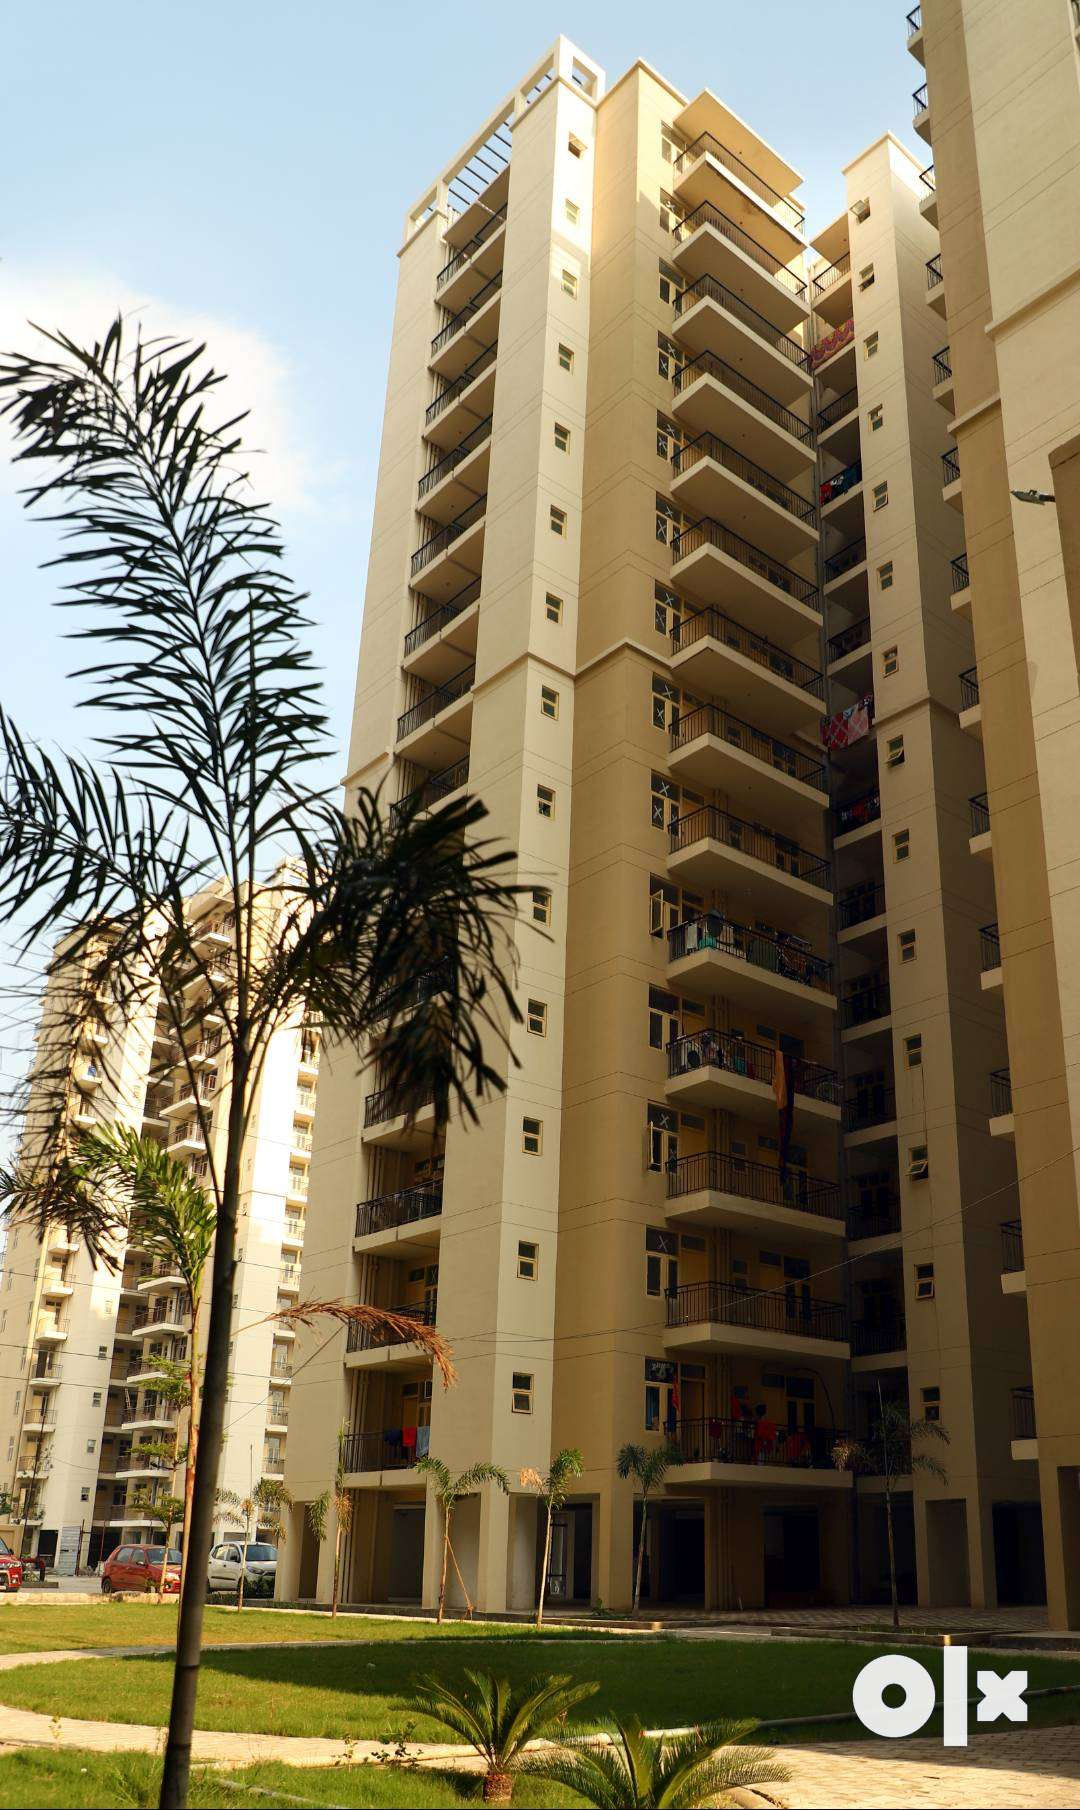 2BHK Ready to move Sector 70; 2 BHK Flat at Faridabad near Ballabhgarh